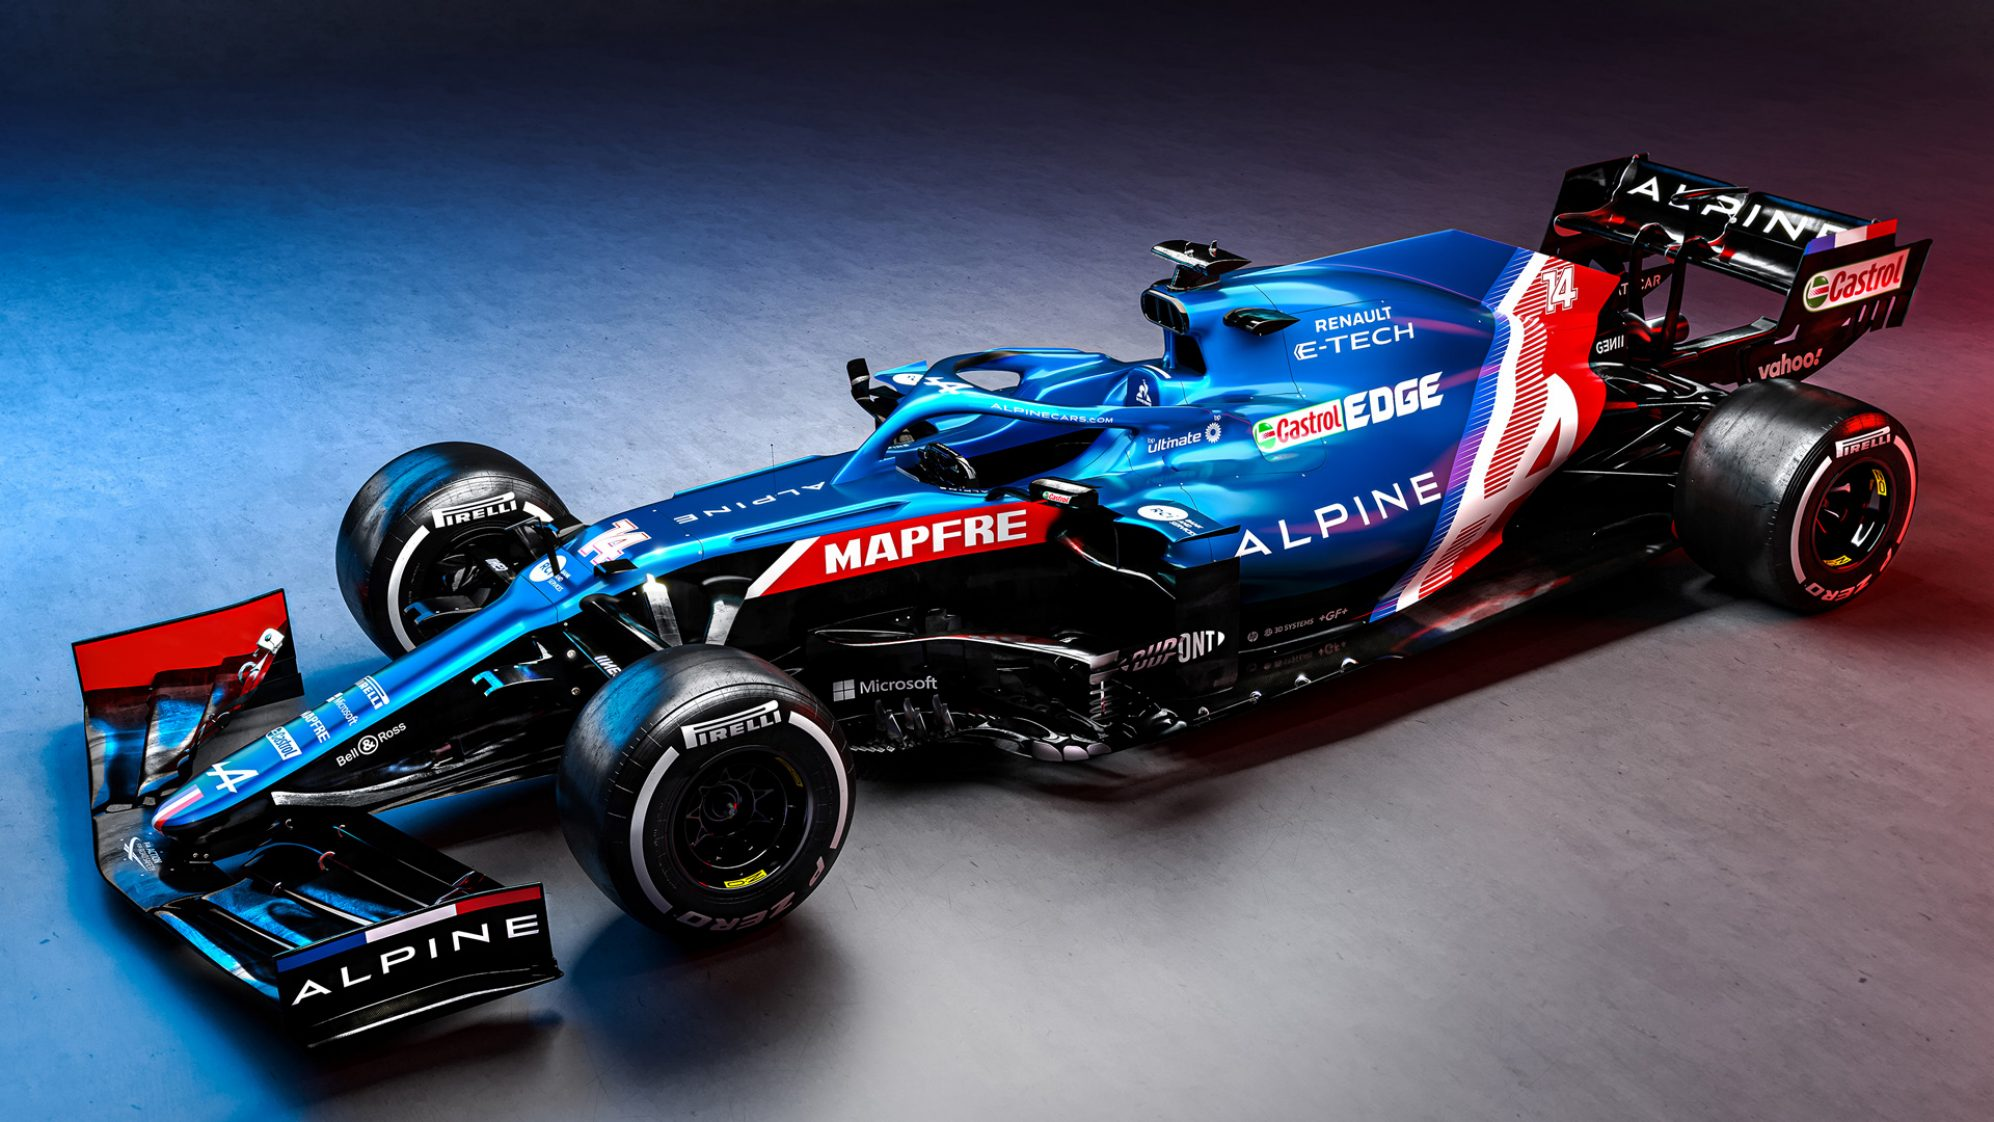 The Renault CEO claims introducing the budget cap in Formula One will help Alpine F1 to be more competetive.